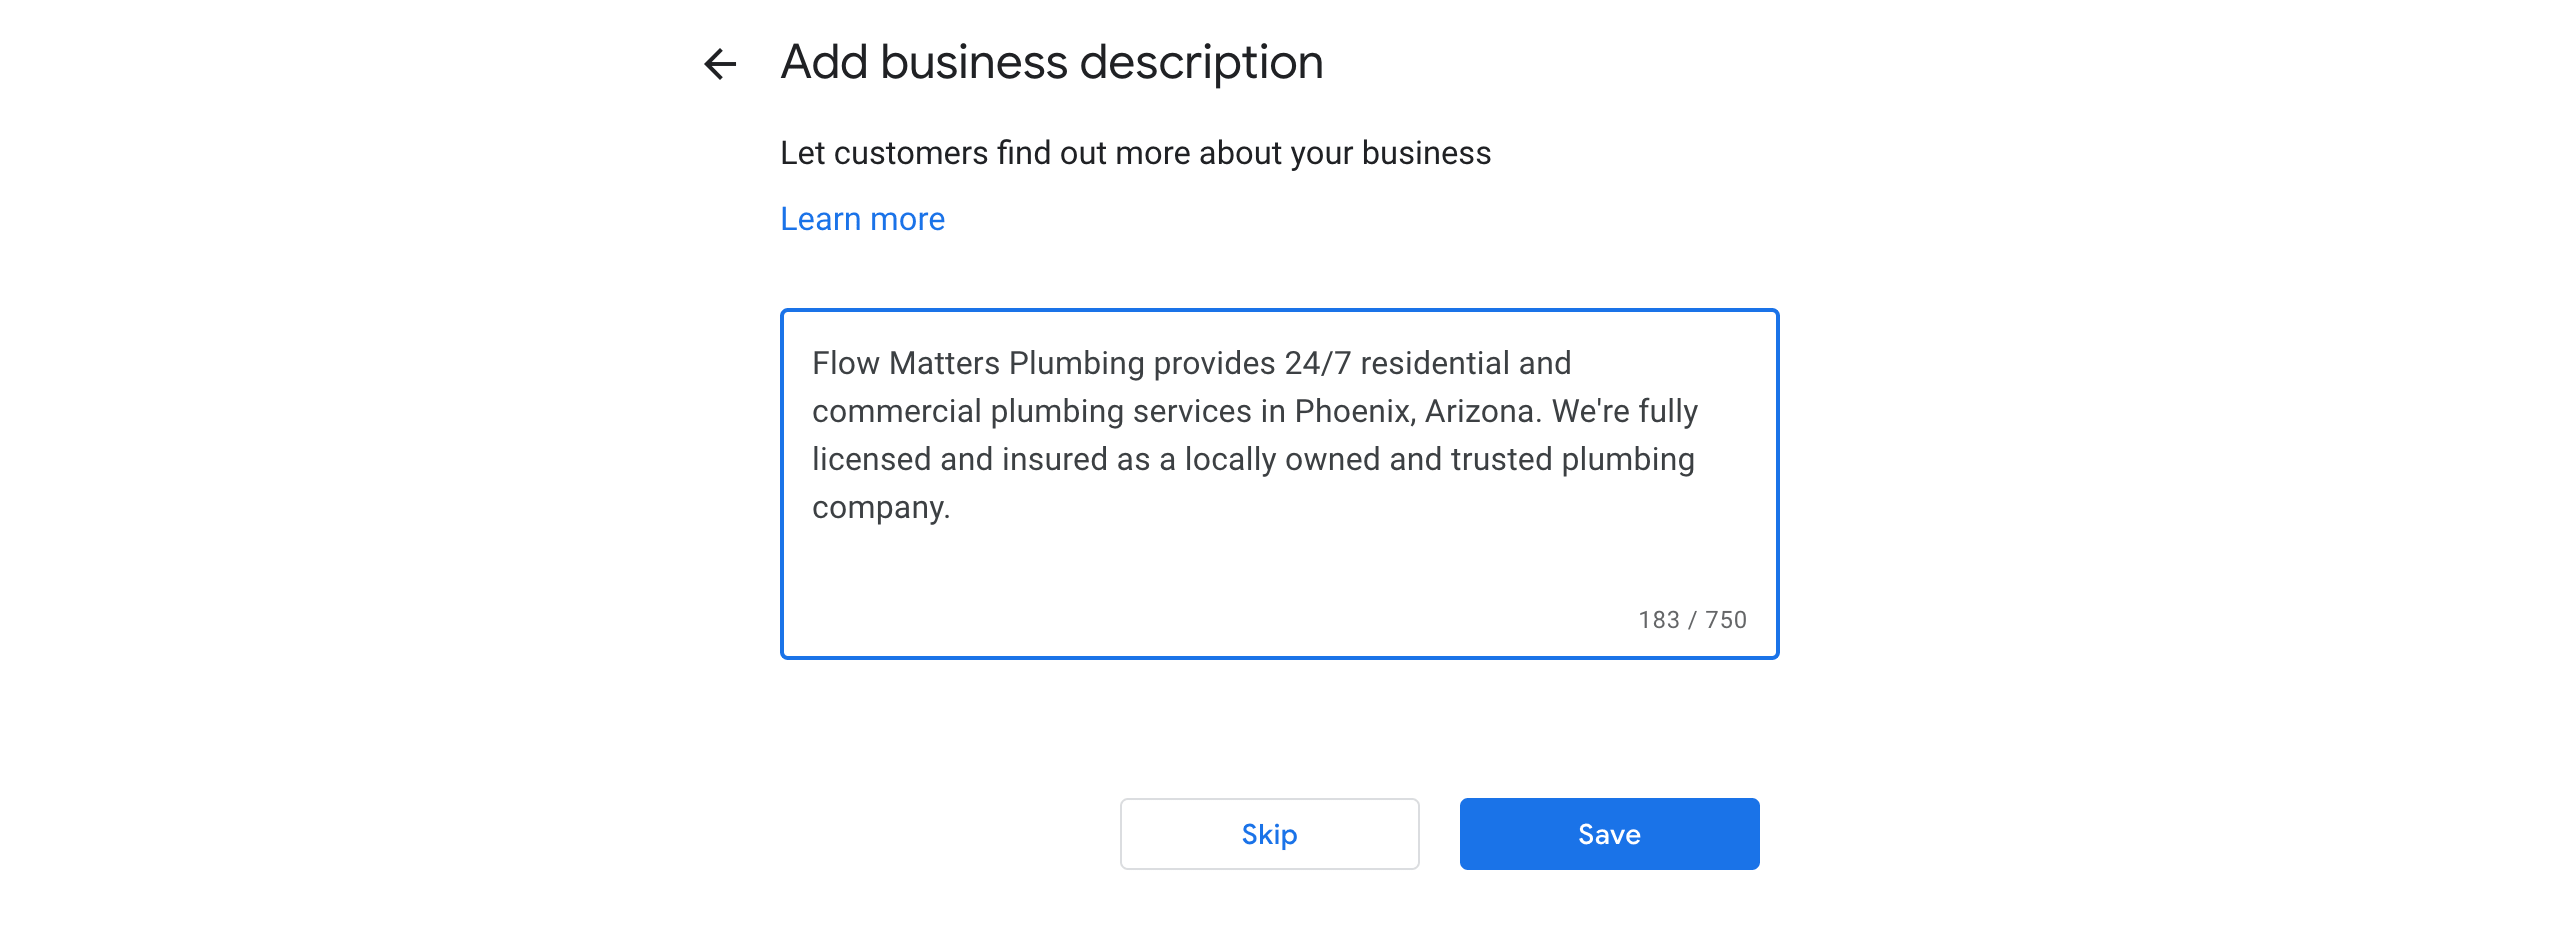 Adding a business description to a upon creating a new Google My Business Profile.